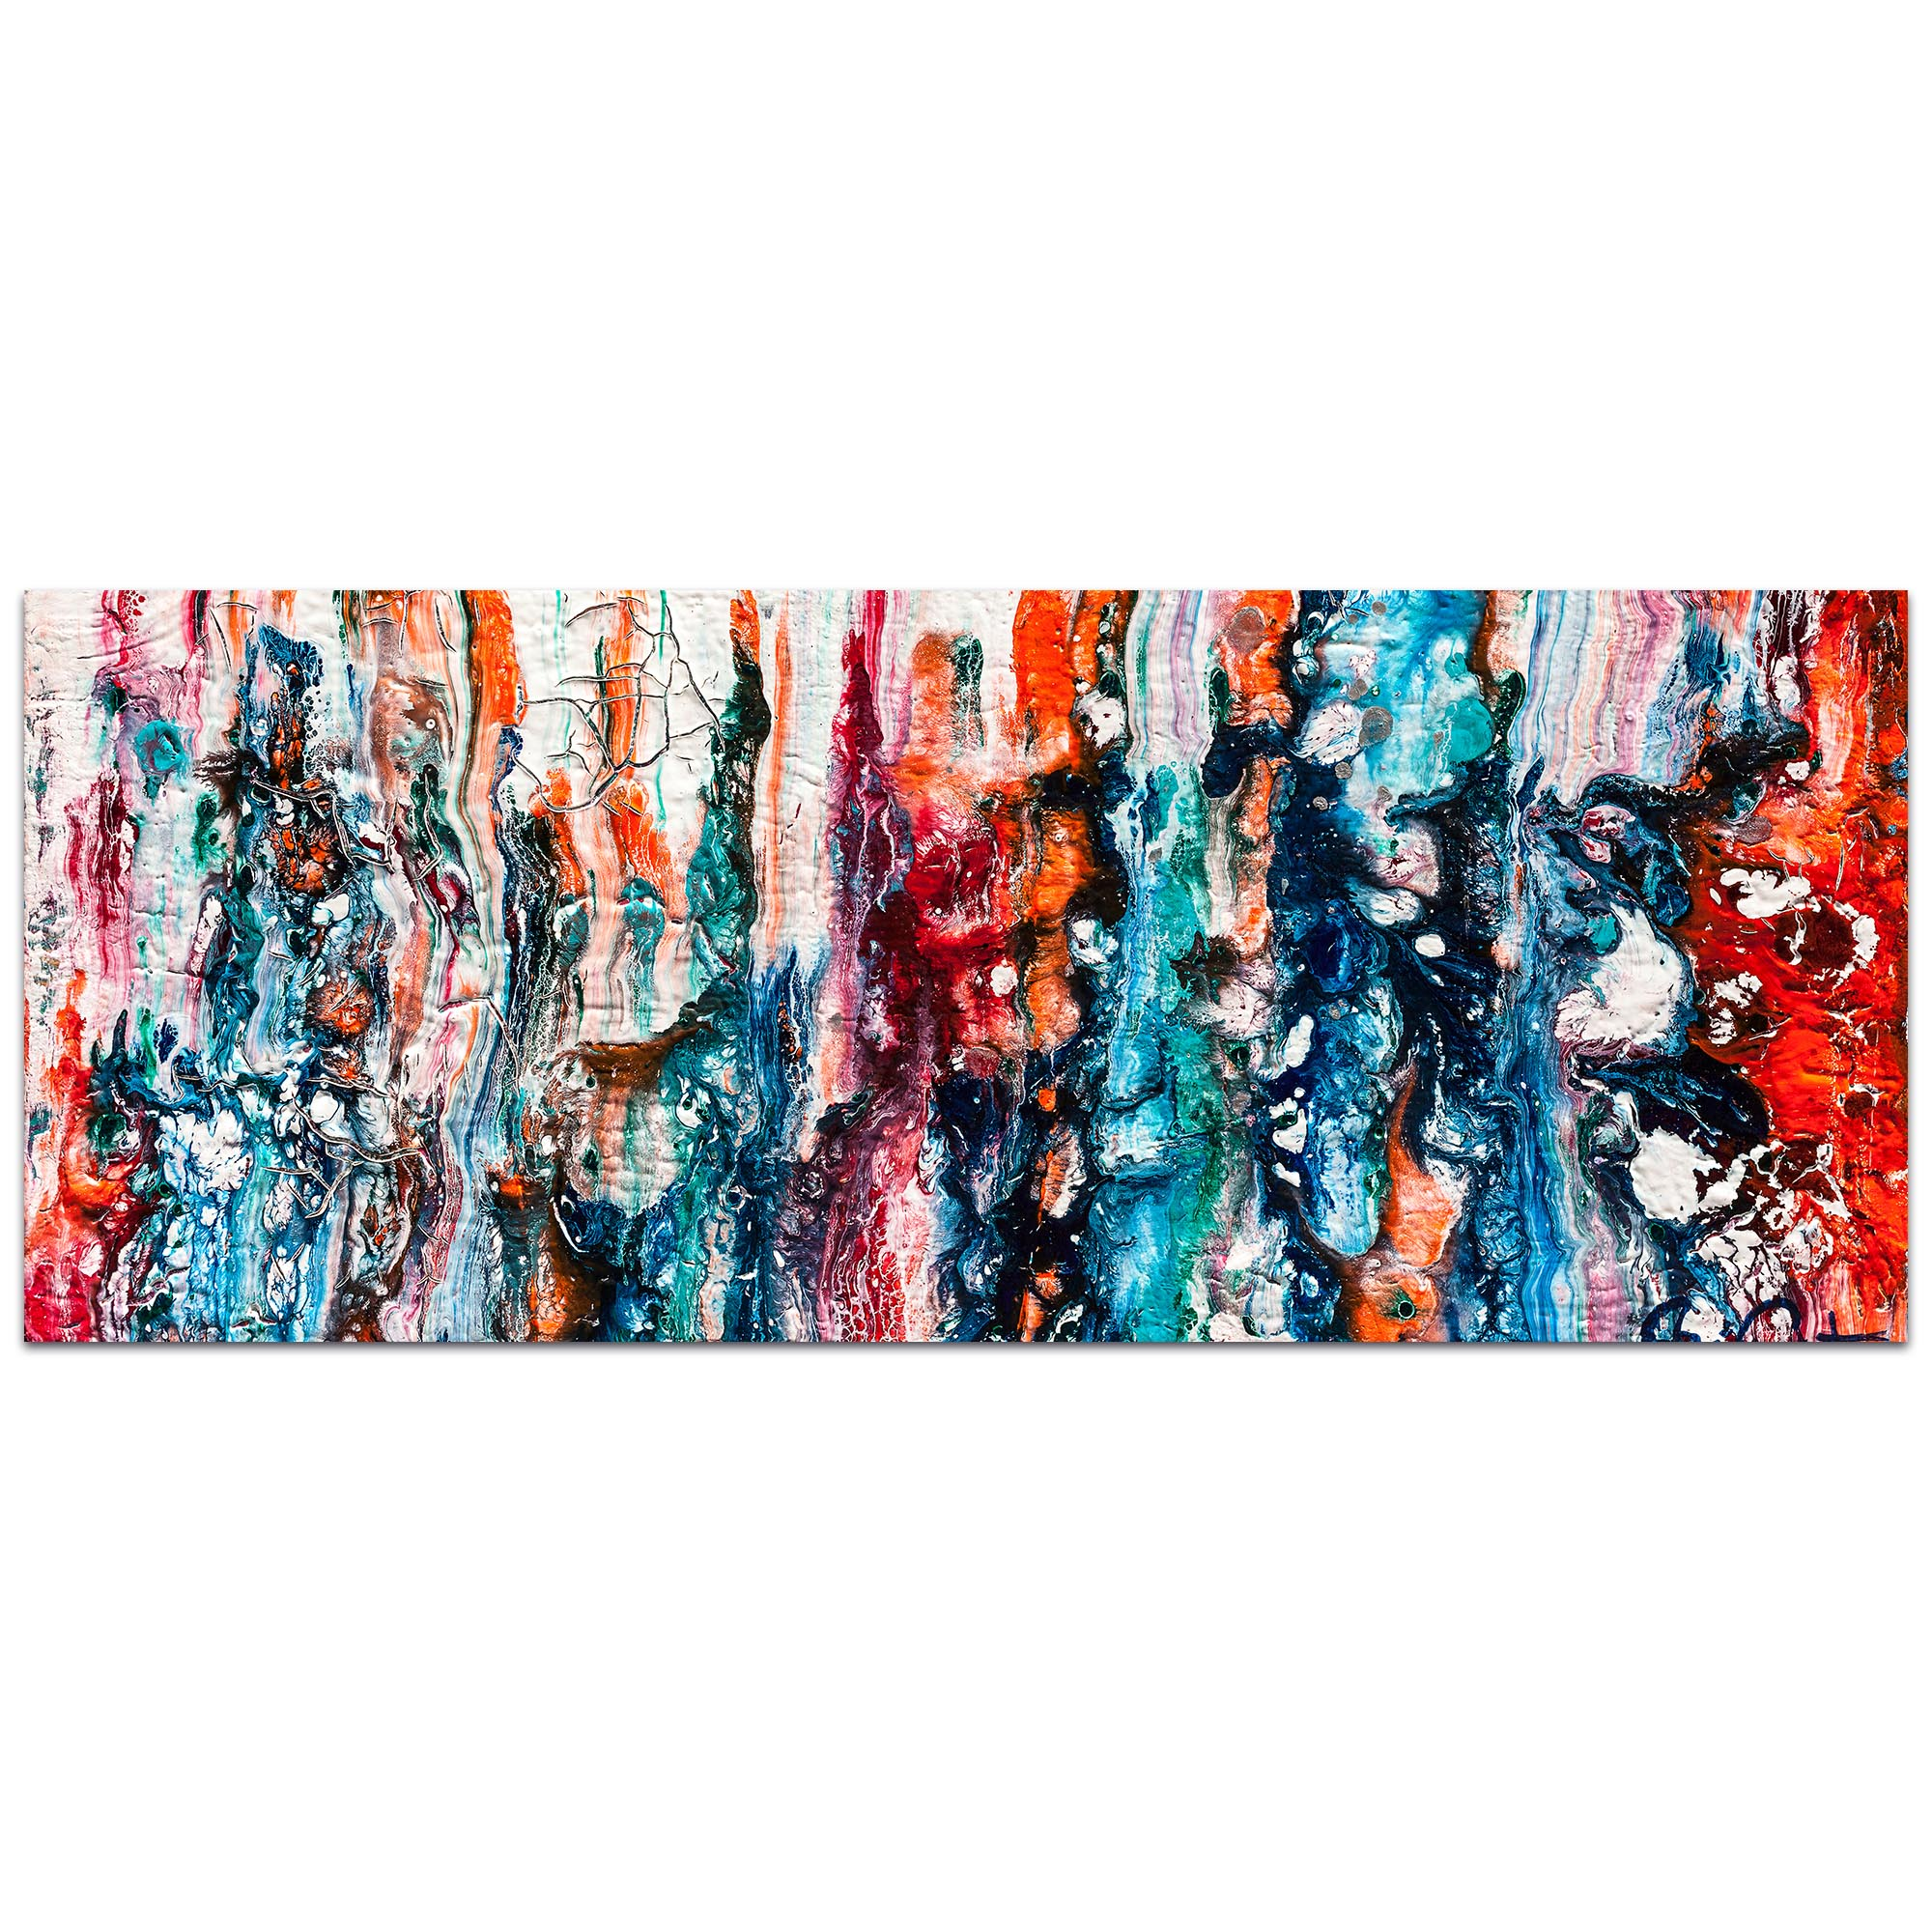 Abstract Wall Art 'Sunset On Her Breath 5' - Colorful Urban Decor on Metal or Plexiglass